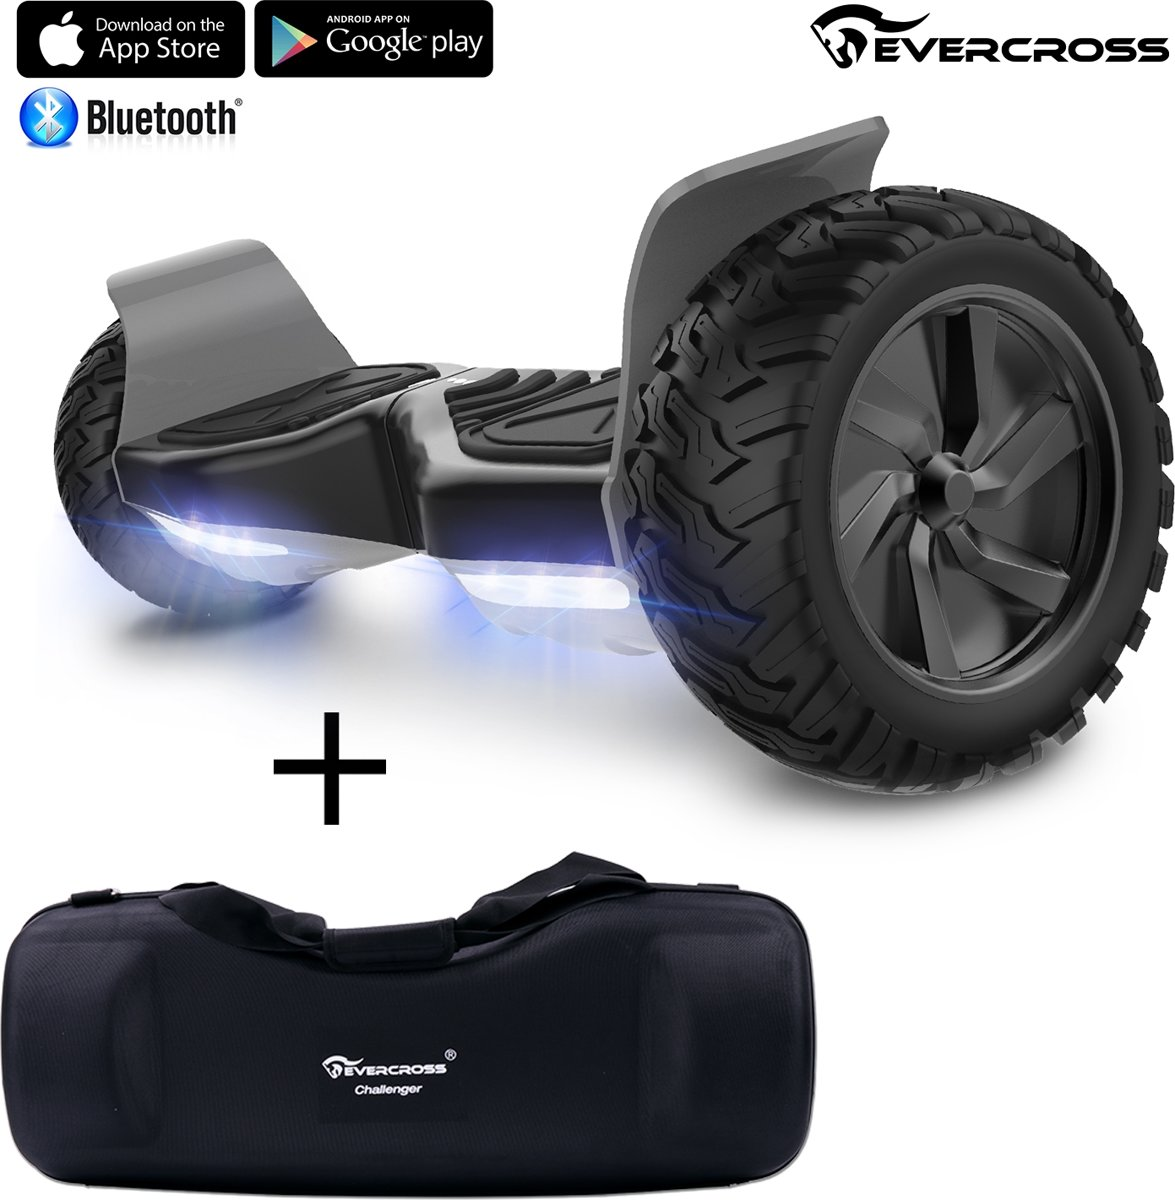 Evercross Challenger Basic 2018 Best 8.5 inch SUV Hoverboard + Draagbare waterdichte sporttas 8.5 inch